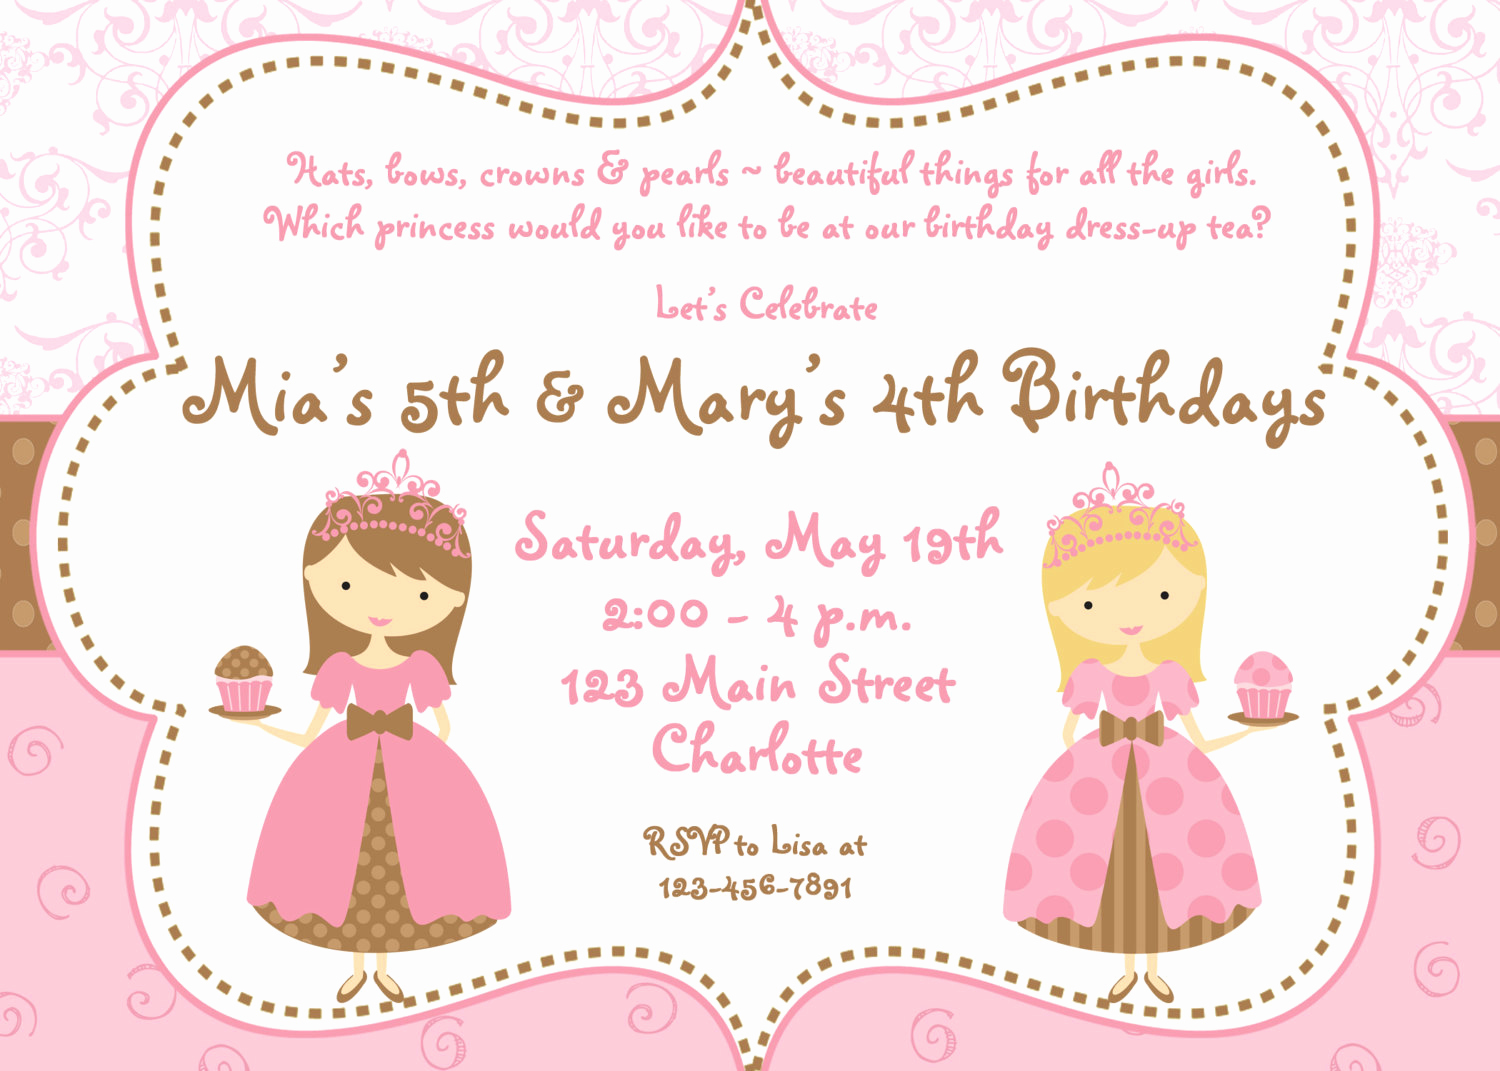 Tea Party Invitation Wording Inspirational Tea Party Birthday Invitation Cupcake Party Princess Tea